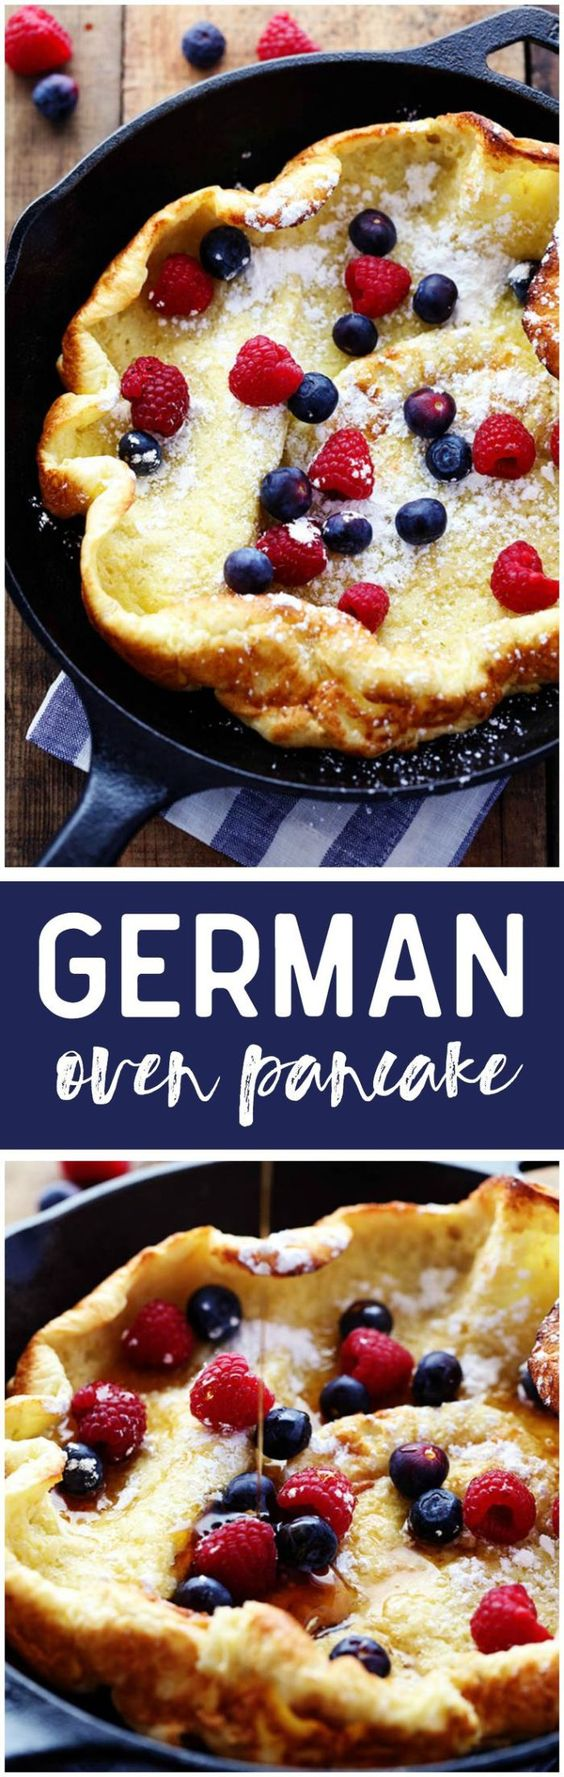 German Oven Pancake Recipe via The Recipe Critic - A hot and puffy golden pancake that only requires 5 minutes of prep! This classic breakfast is always a huge hit at our house!